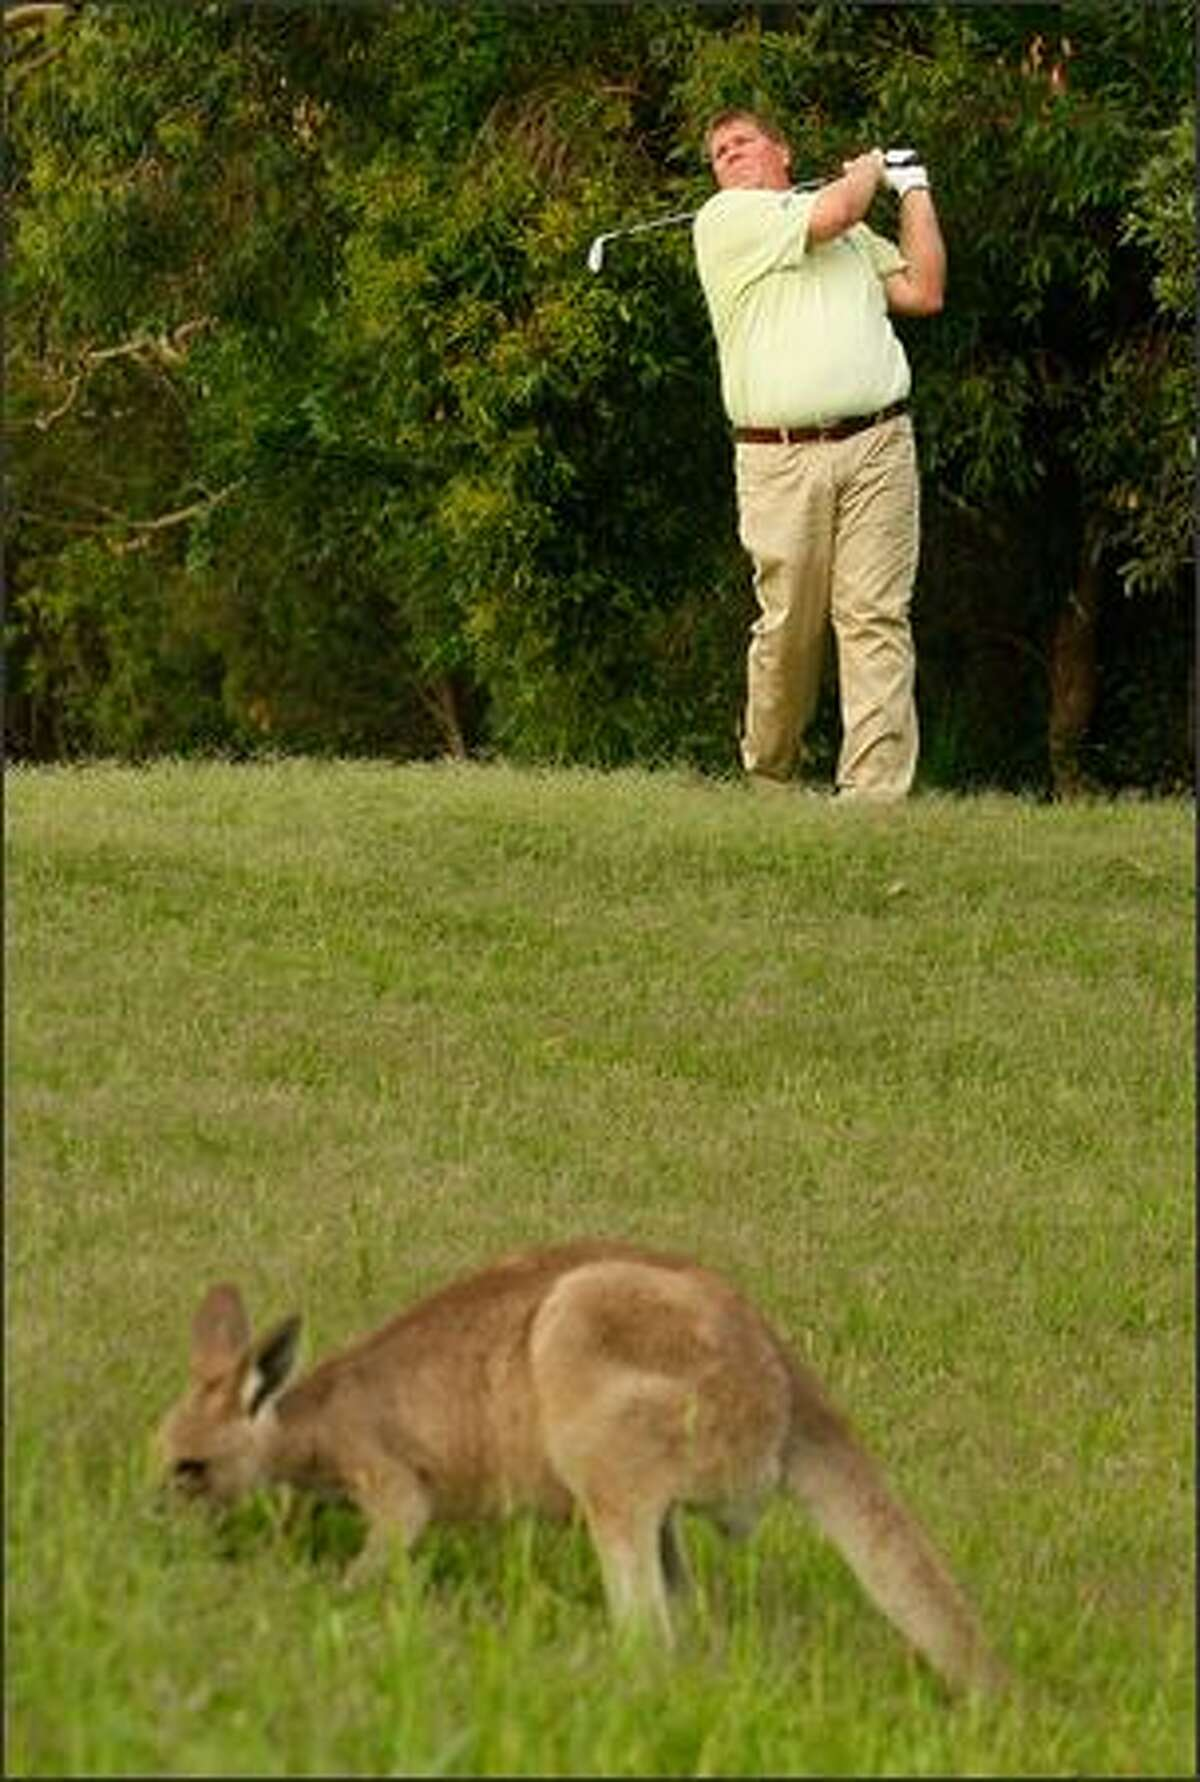 John Daly of the USA plays a shot in front of a kangaroo during day two of the Australian PGA Championship at the Hyatt Regency Resort at Coolum Beach, Australia.